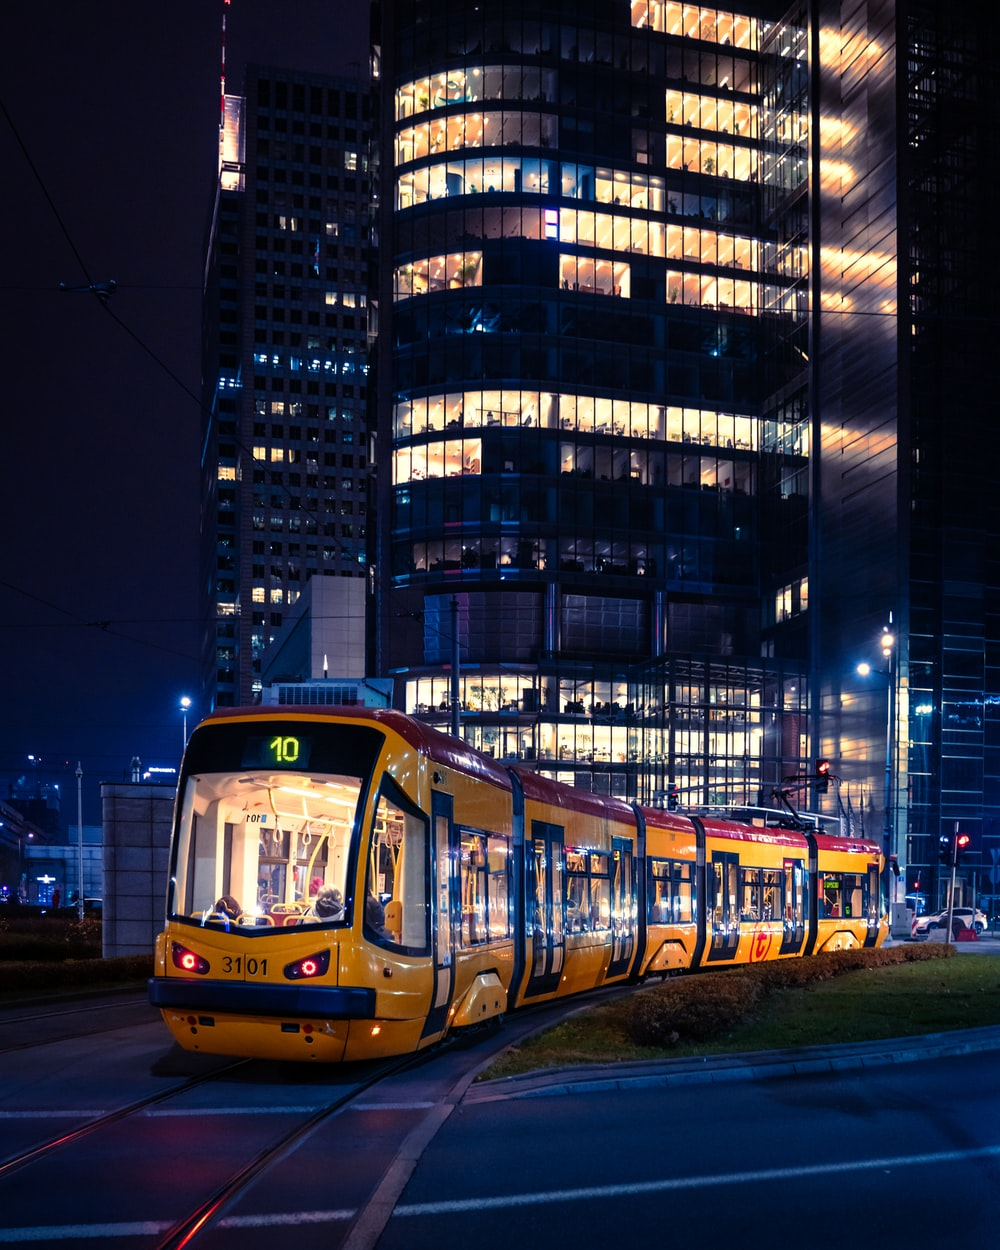 yellow and black tram on road during night time